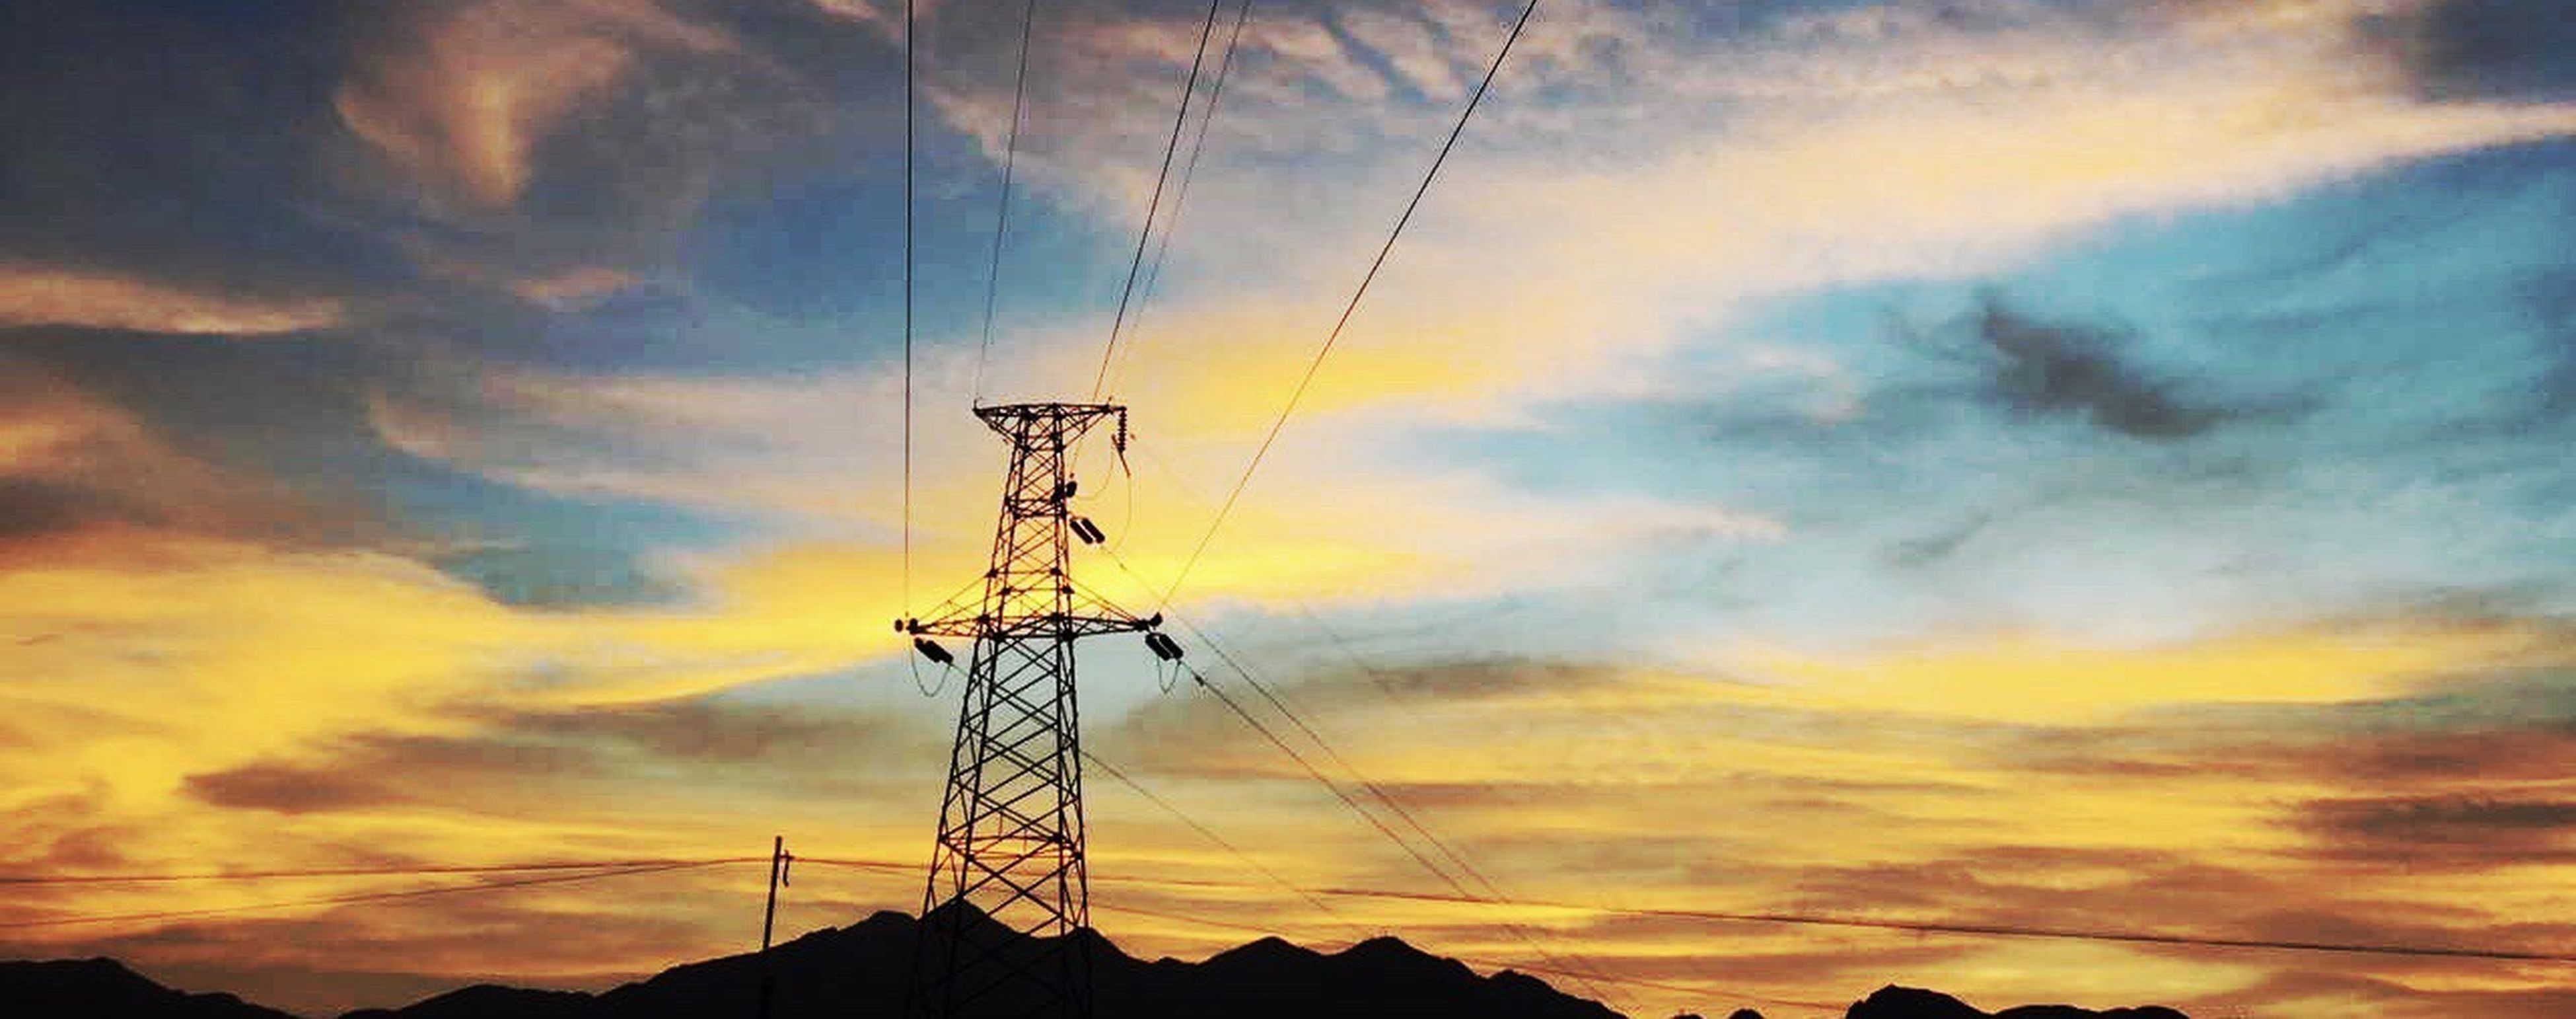 cable, electricity pylon, electricity, cloud - sky, connection, sky, power supply, sunset, power line, silhouette, fuel and power generation, technology, outdoors, no people, low angle view, nature, day